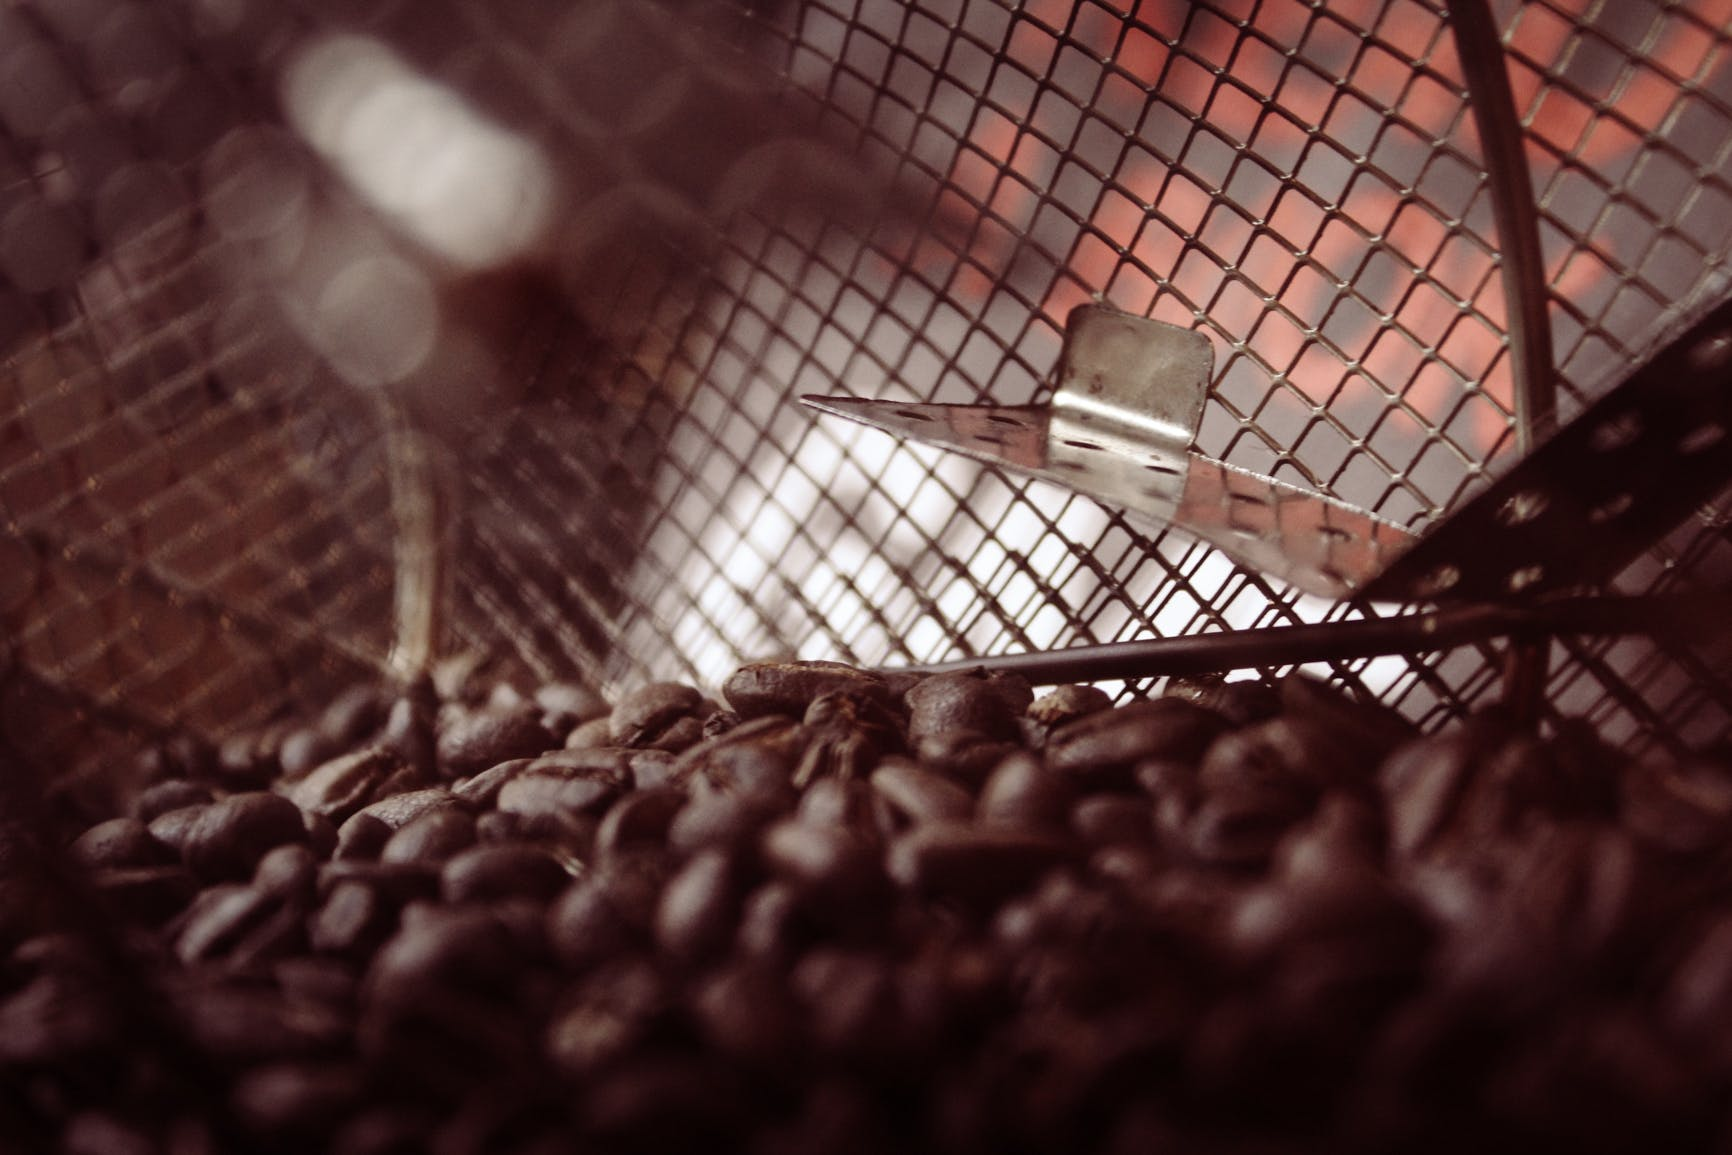 abstract, blur, coffee beans